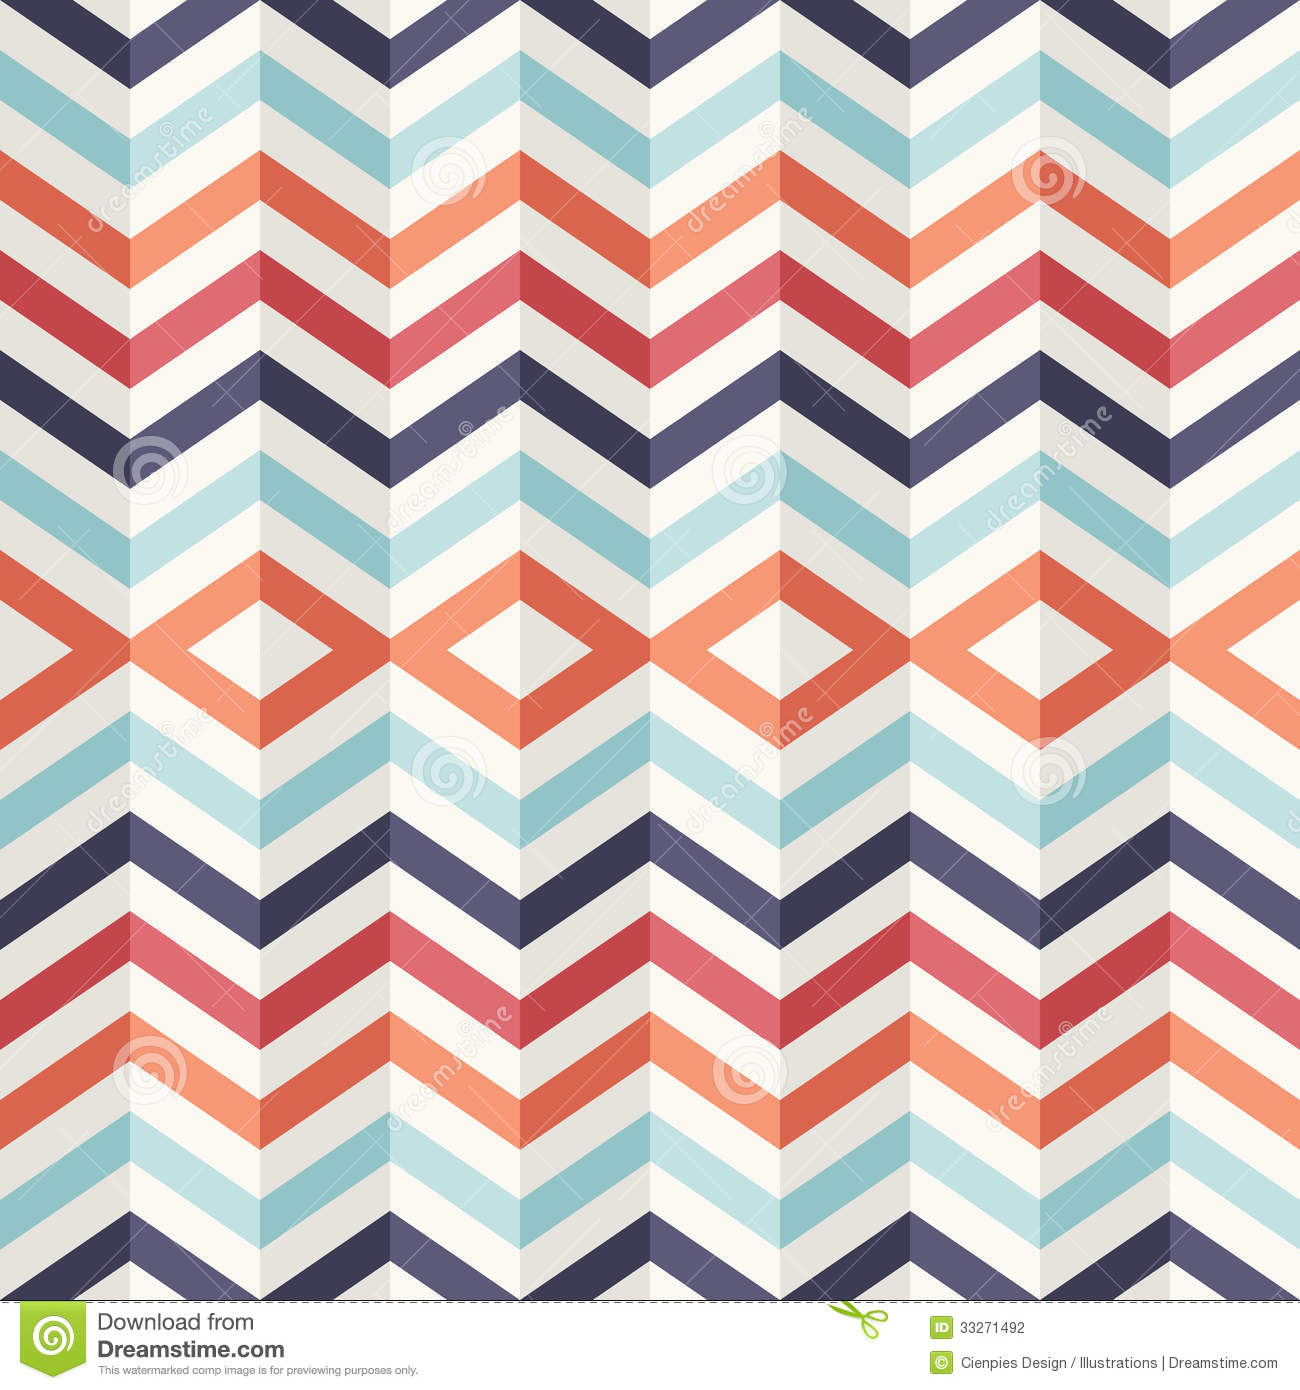 unusual vintage 3d effect abstract geometric pattern